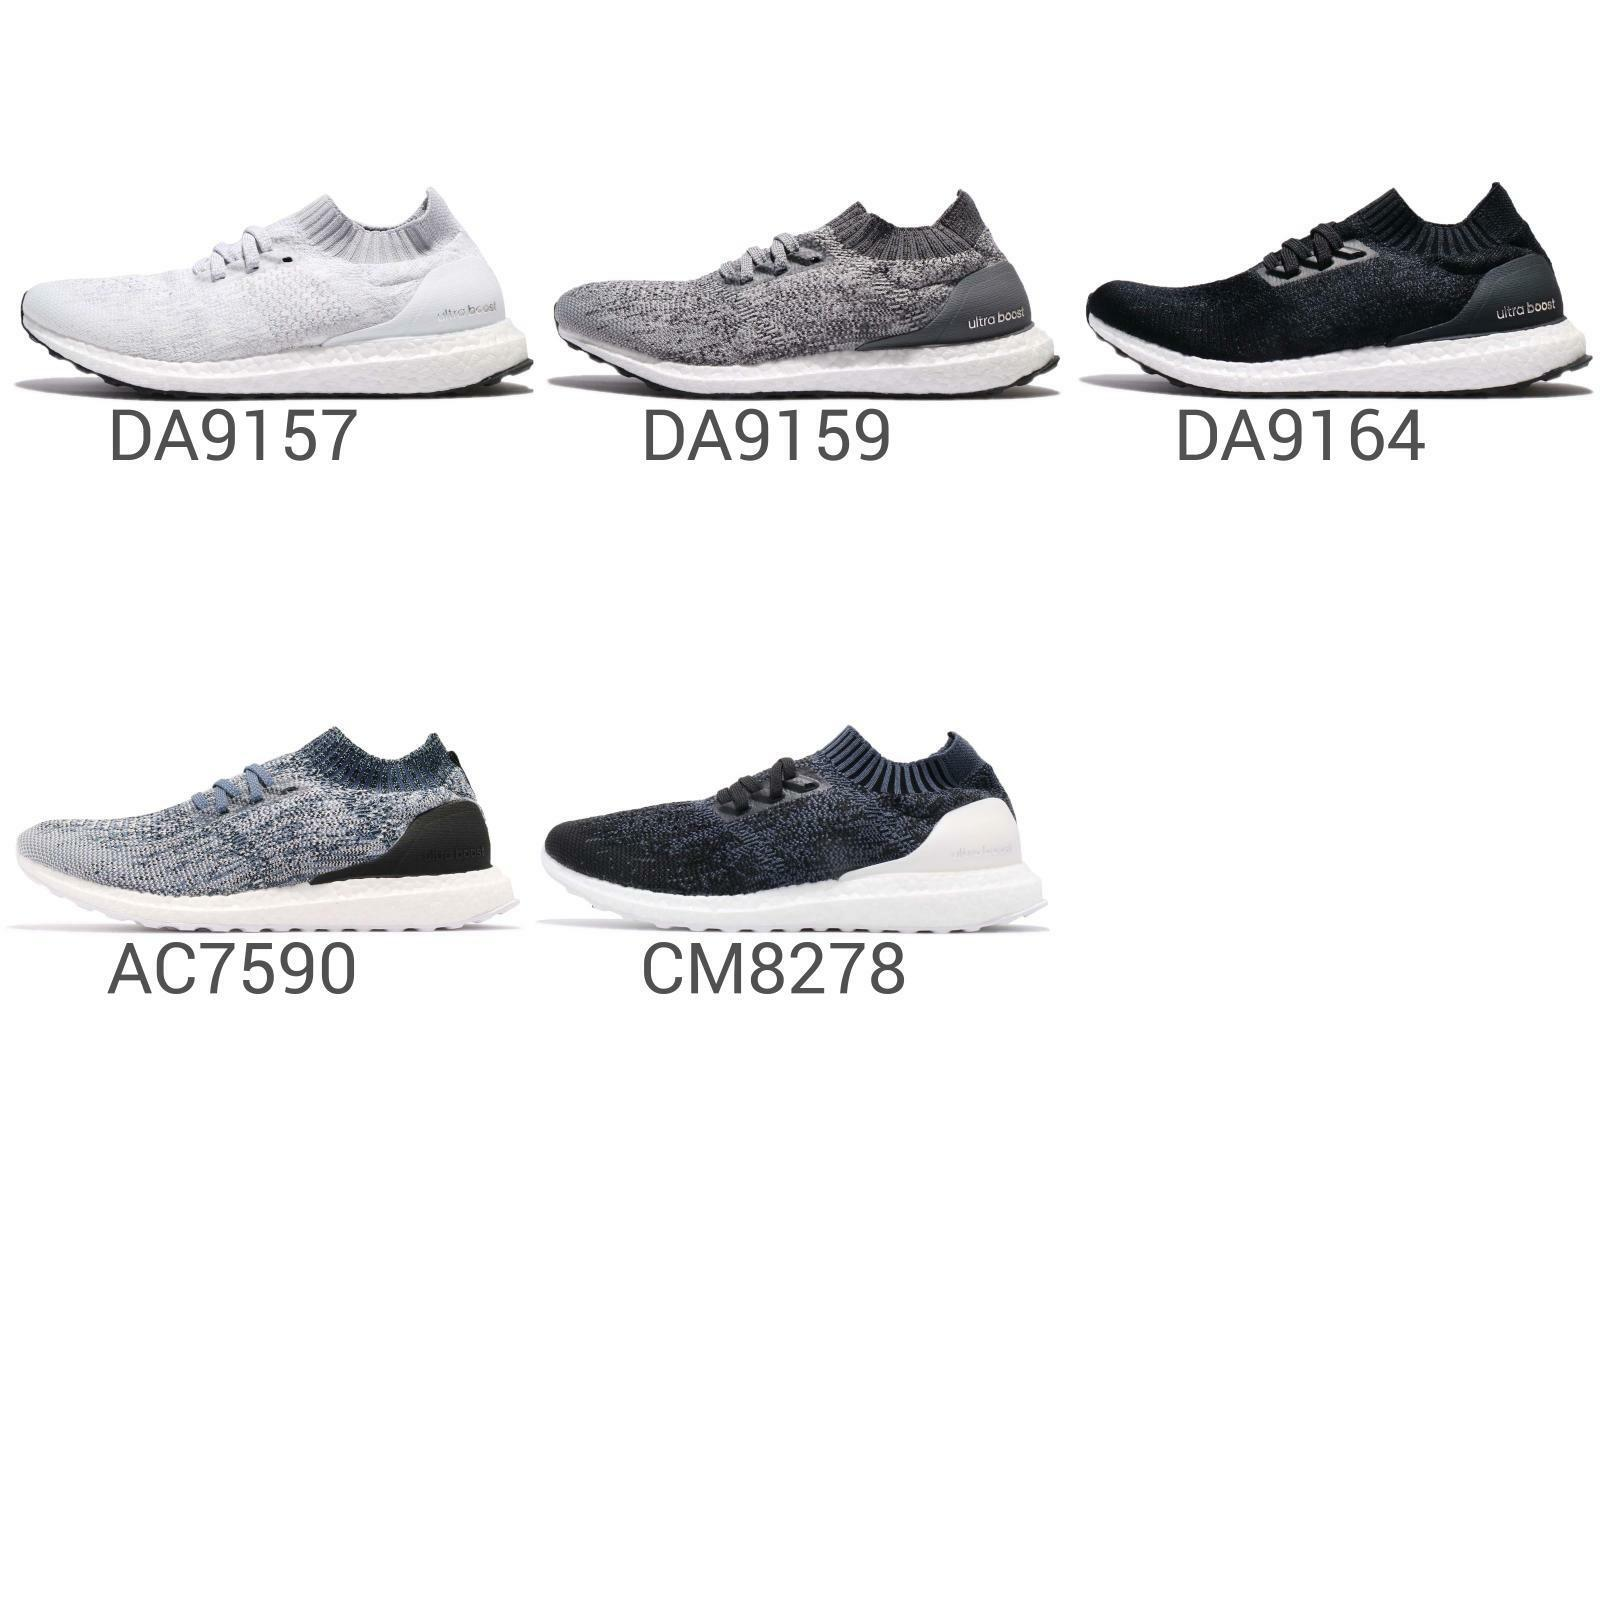 adidas UltraBOOST Uncaged On homme fonctionnement chaussures Baskets